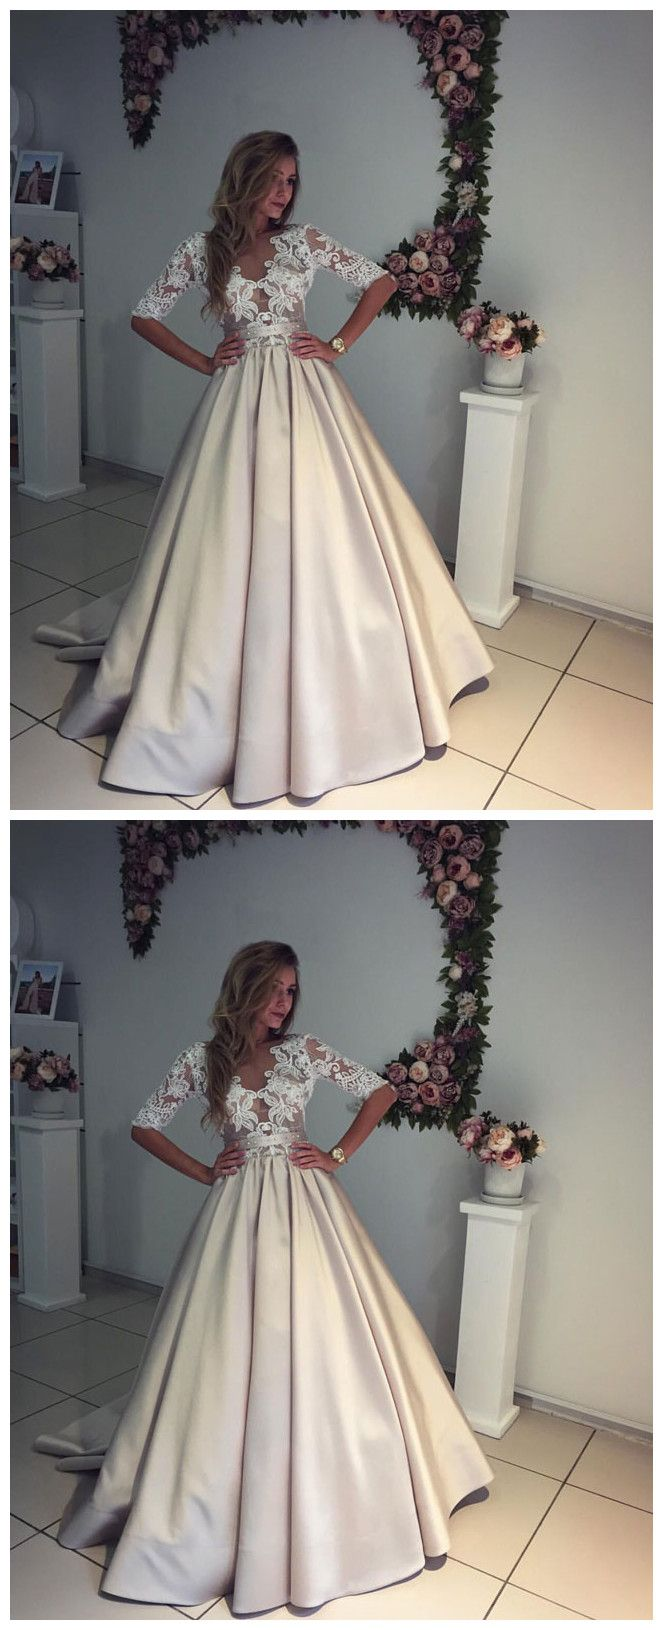 Champagne satin lace wedding dress, prom dress #promdresses #longpromdresses #2018promdresses #2018newstyles #fashions #styles #hiprom #champagne